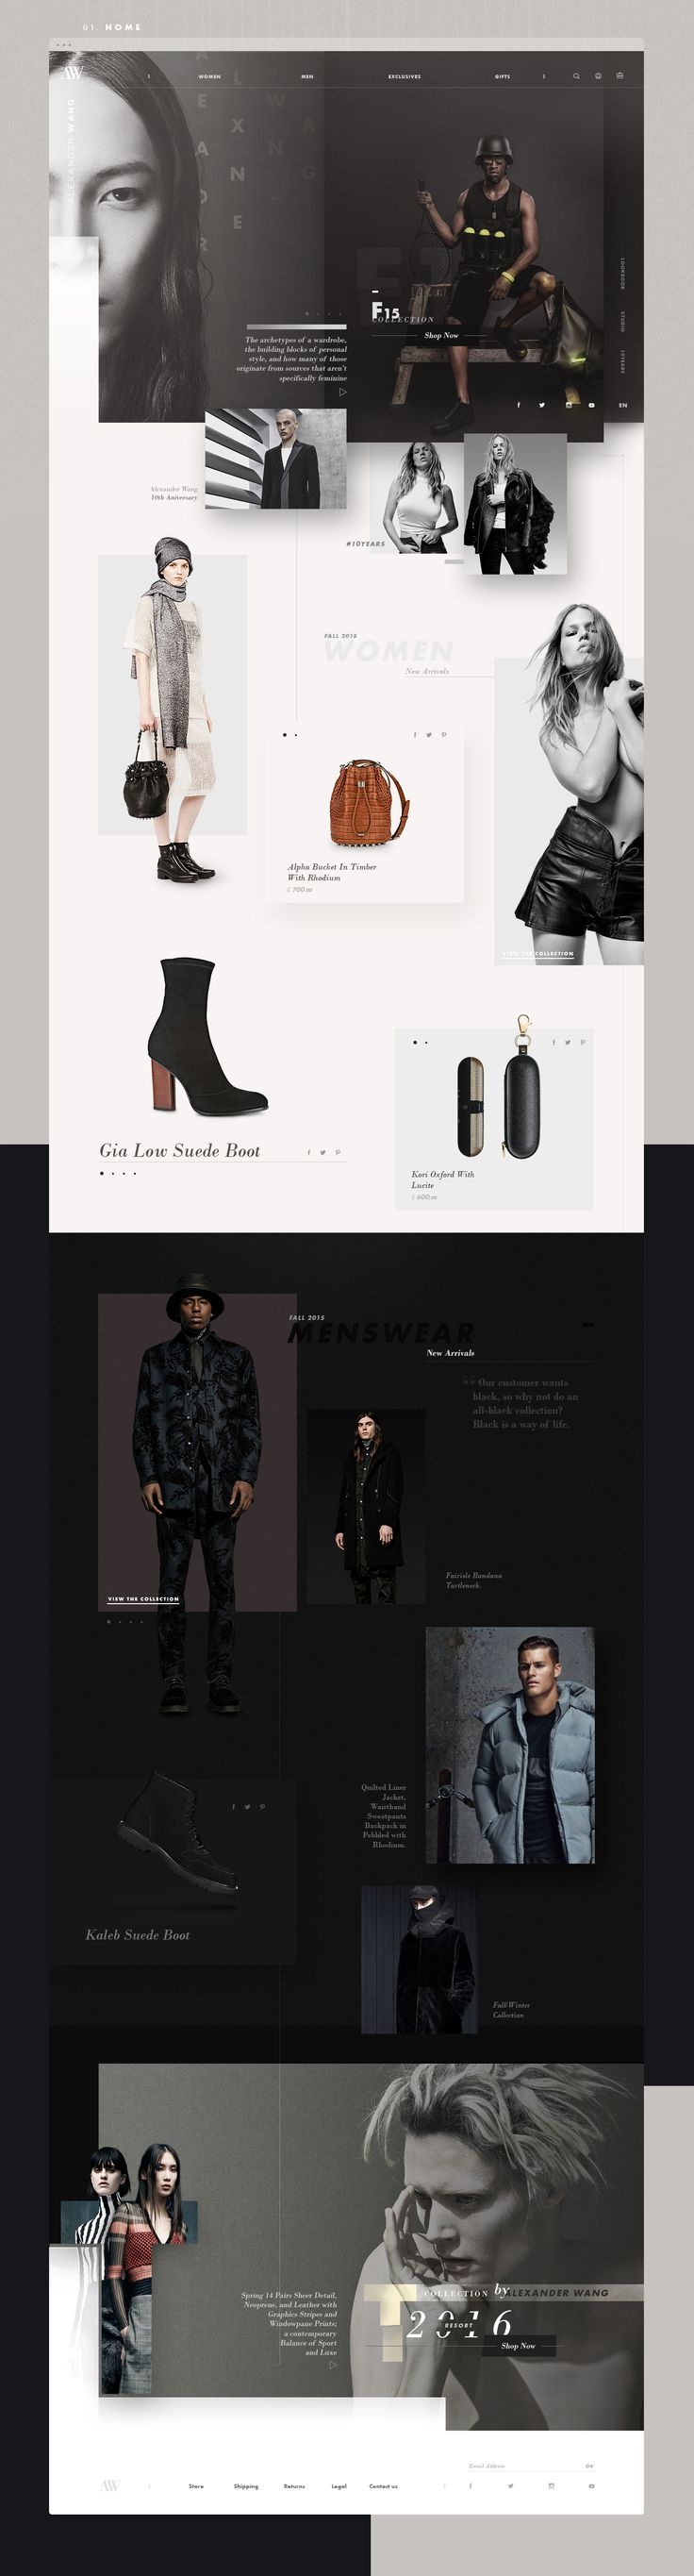 126 best www images on Pinterest | Ui design, Website designs and ...